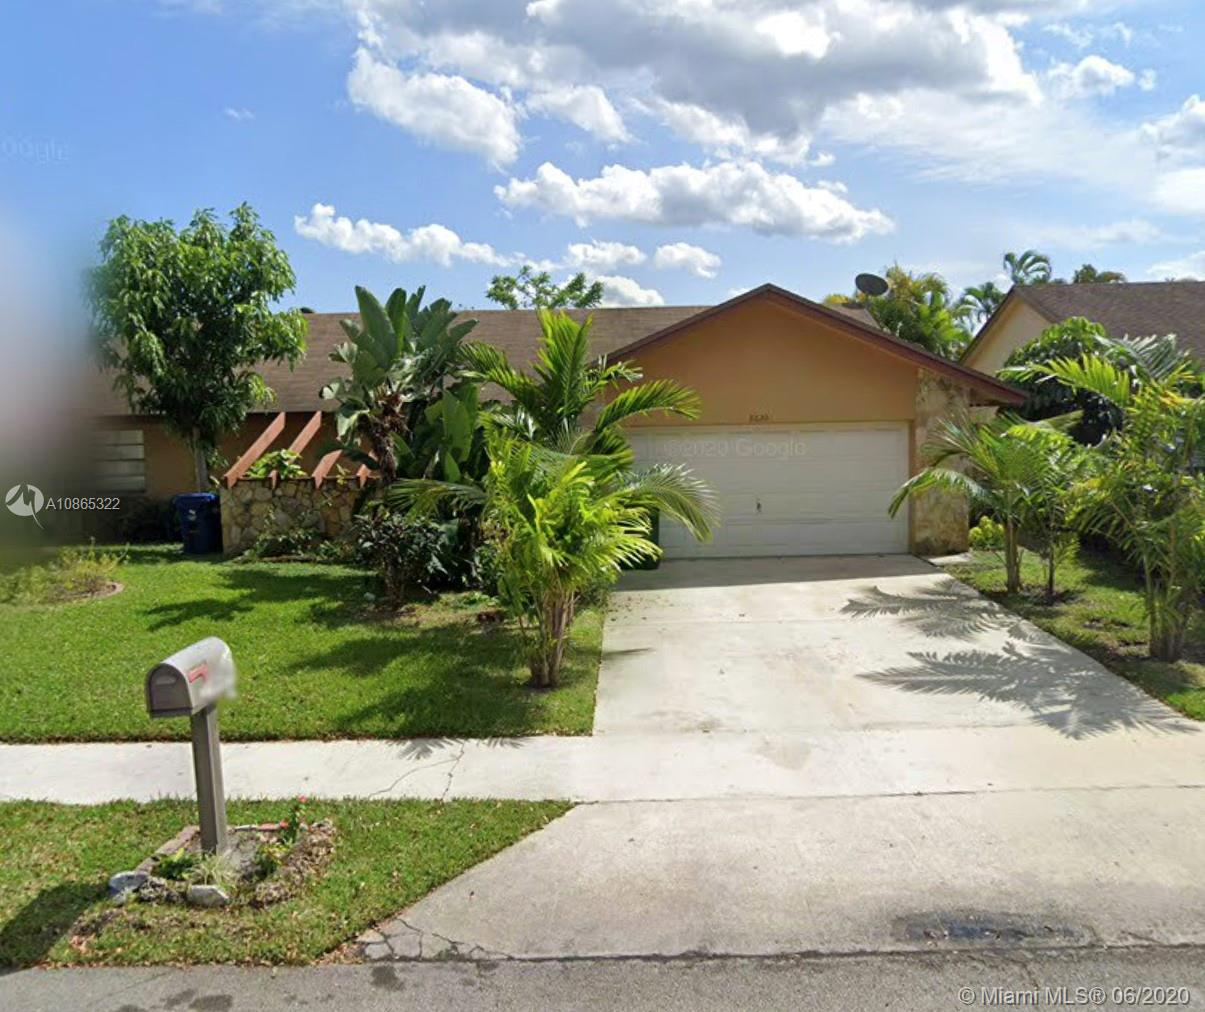 Beautiful one-story home in northwest Lauderhill. Very open, high vaulted ceilings, private yard, fruit trees. This home will not last!